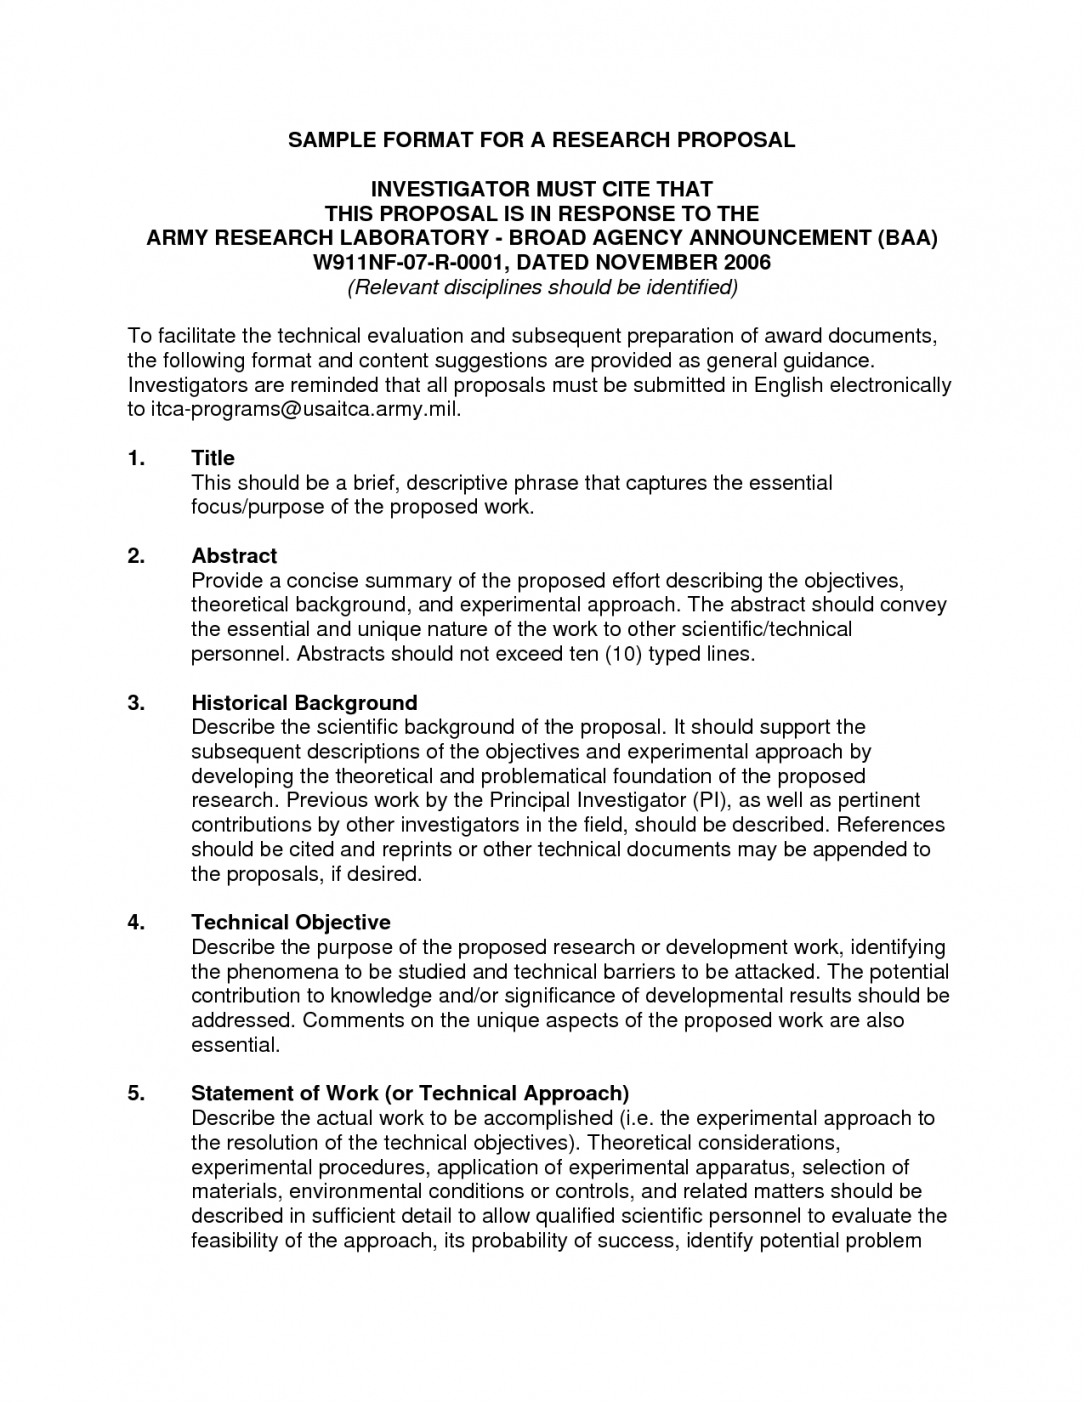 022 What Is Proposal Essay Example Format How To Write Outline Research Top A The Purpose Of Good Topic Argument Full